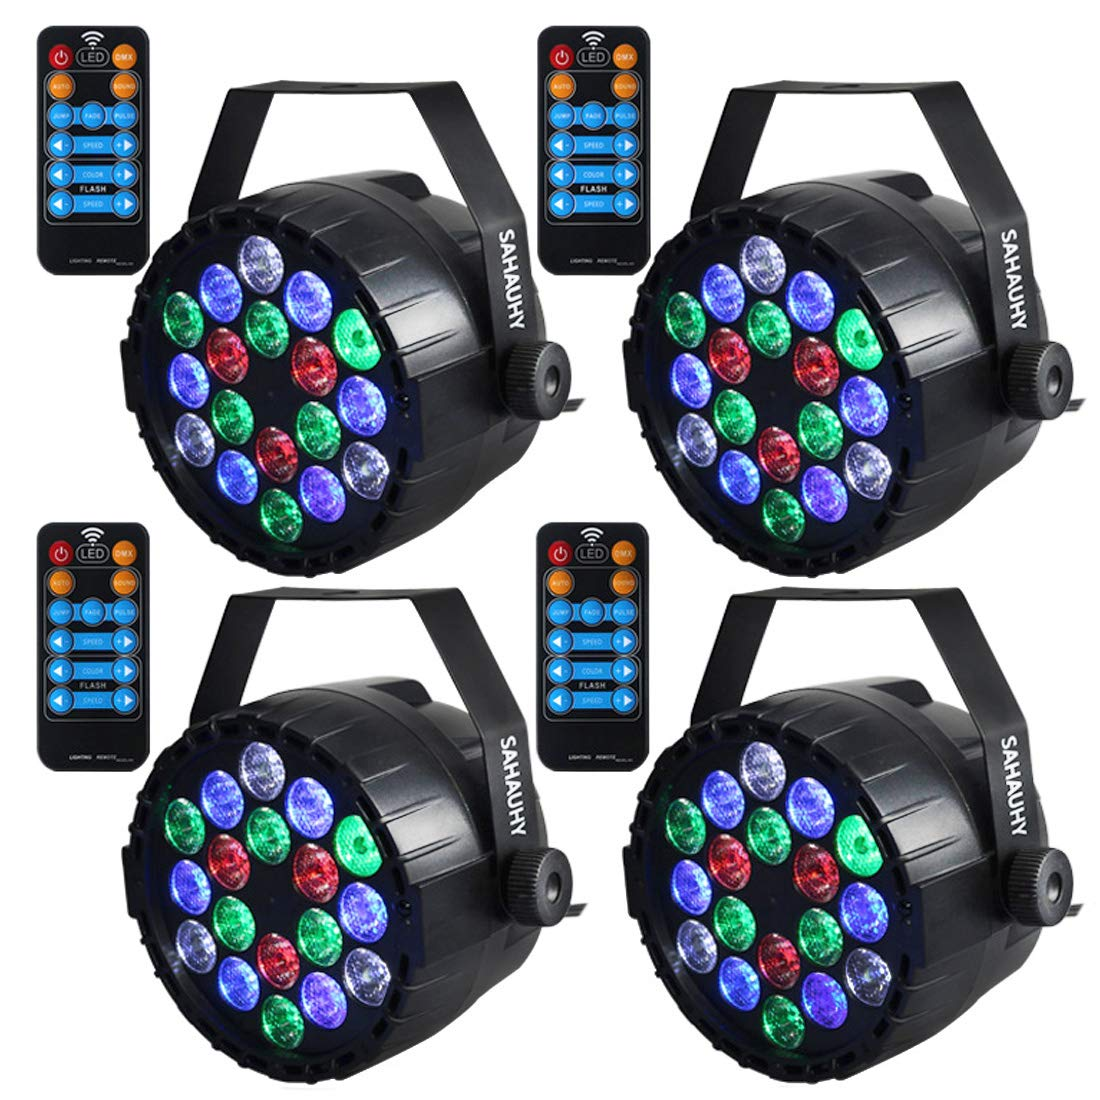 Aspiring Led Moving Head Lighting Fixture For Parties And Events Stage Lighting & Effects Musical Instruments & Gear